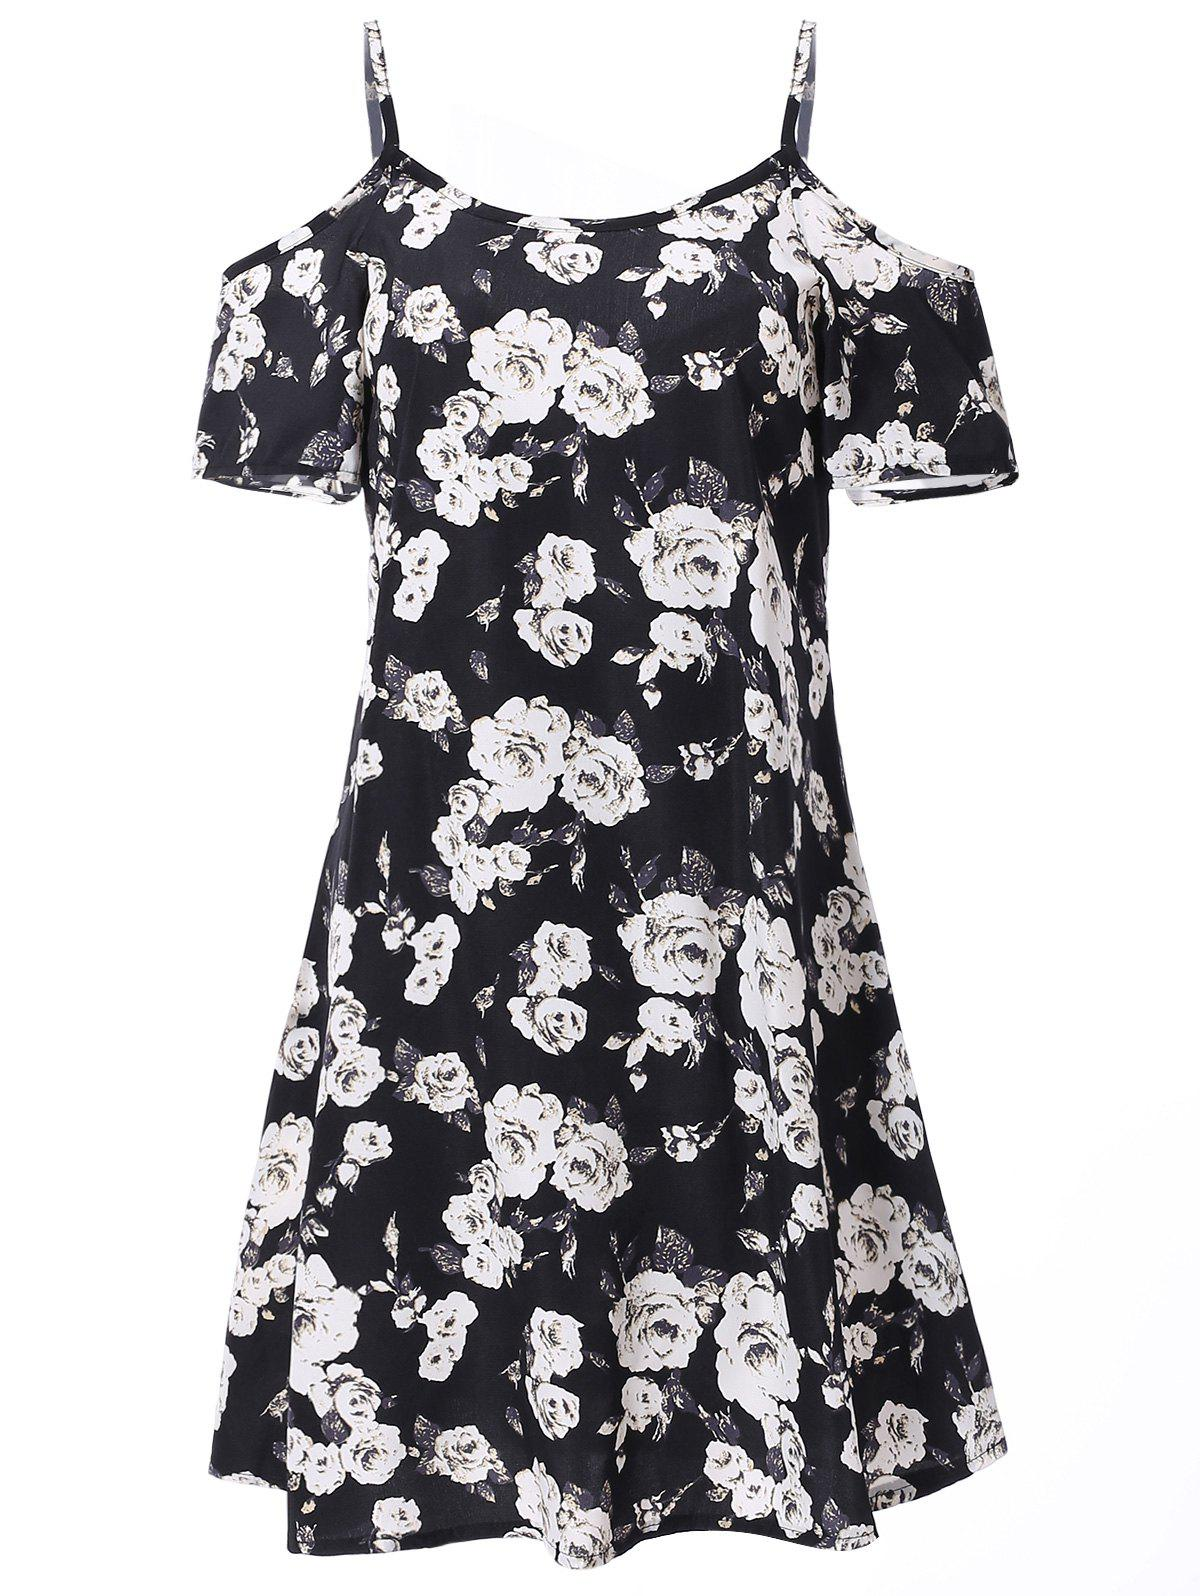 Fashionable Short Sleeve Spaghetti Strap Floral Print Women's Dress